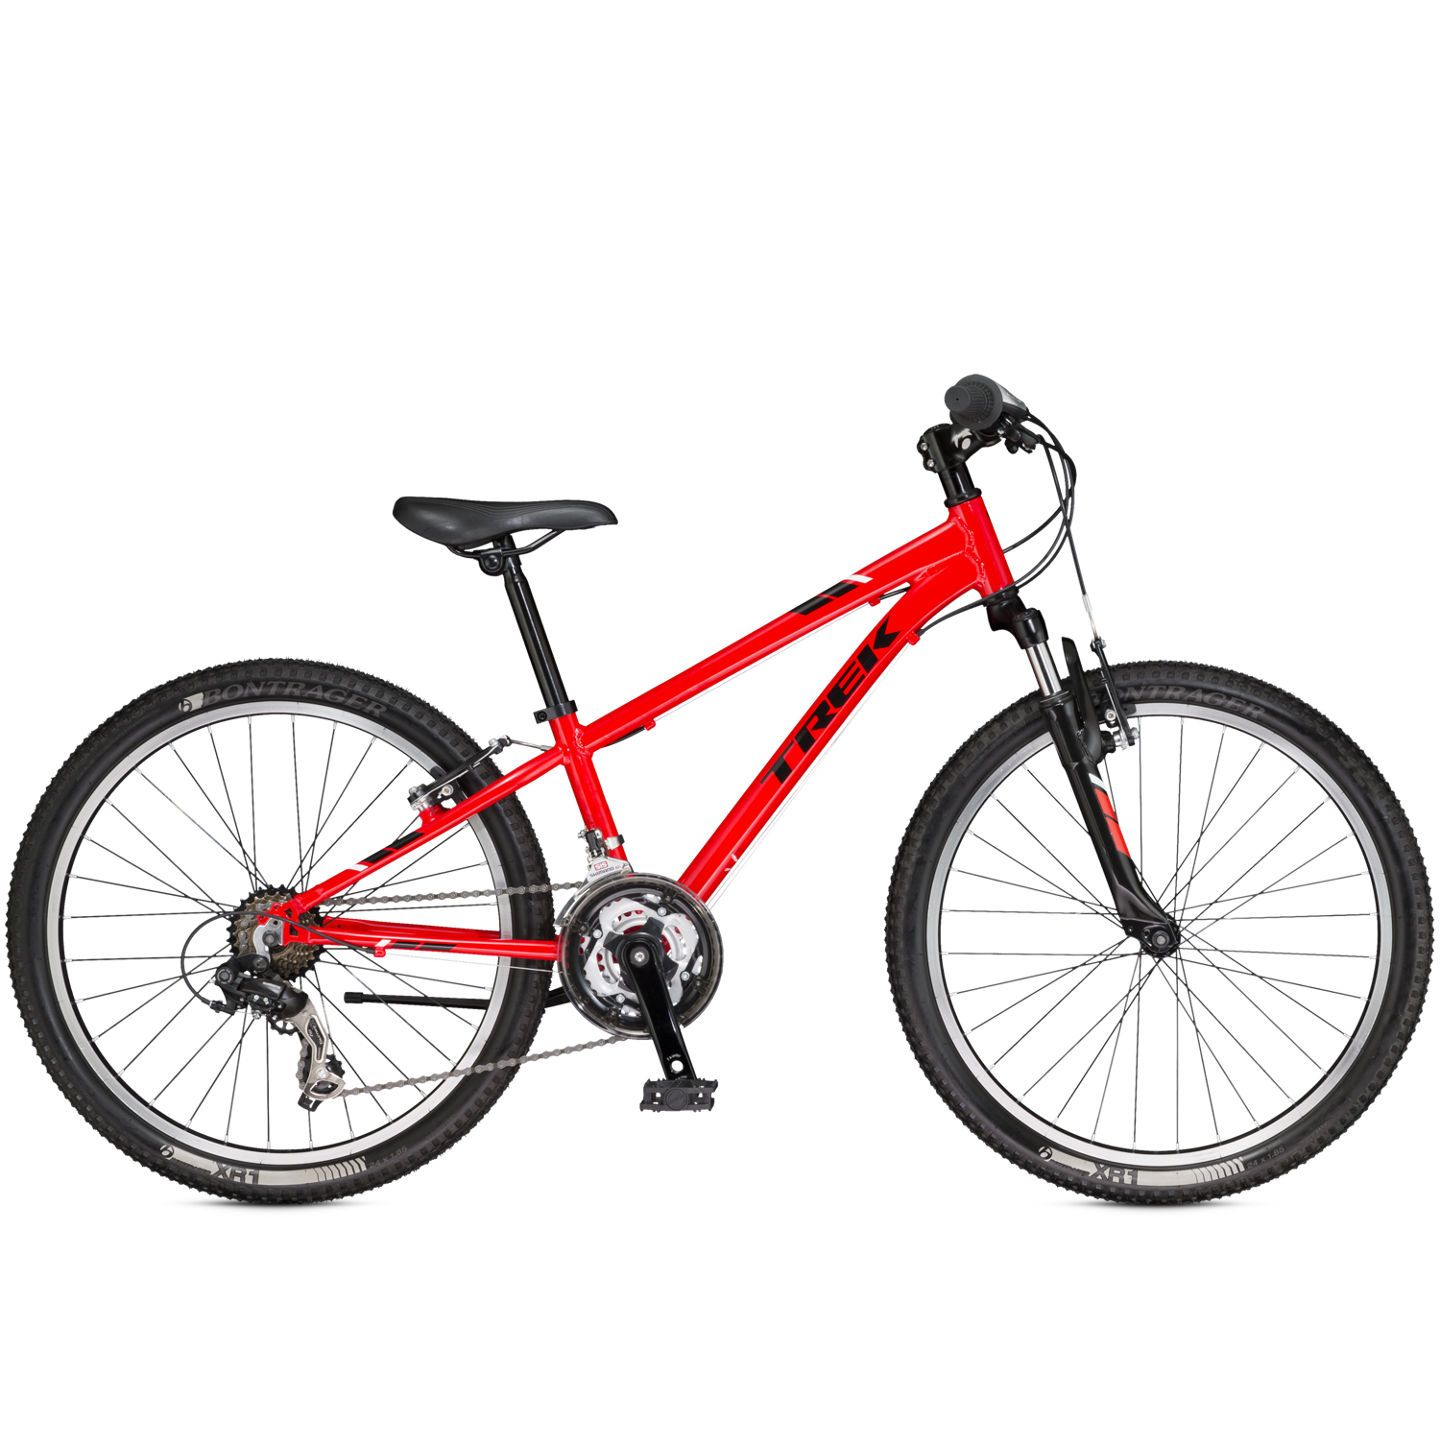 Trek Precaliber 2017 24 Inch Wheel Kids Bike Red Trek Bikes Bike With Training Wheels Boy Bike